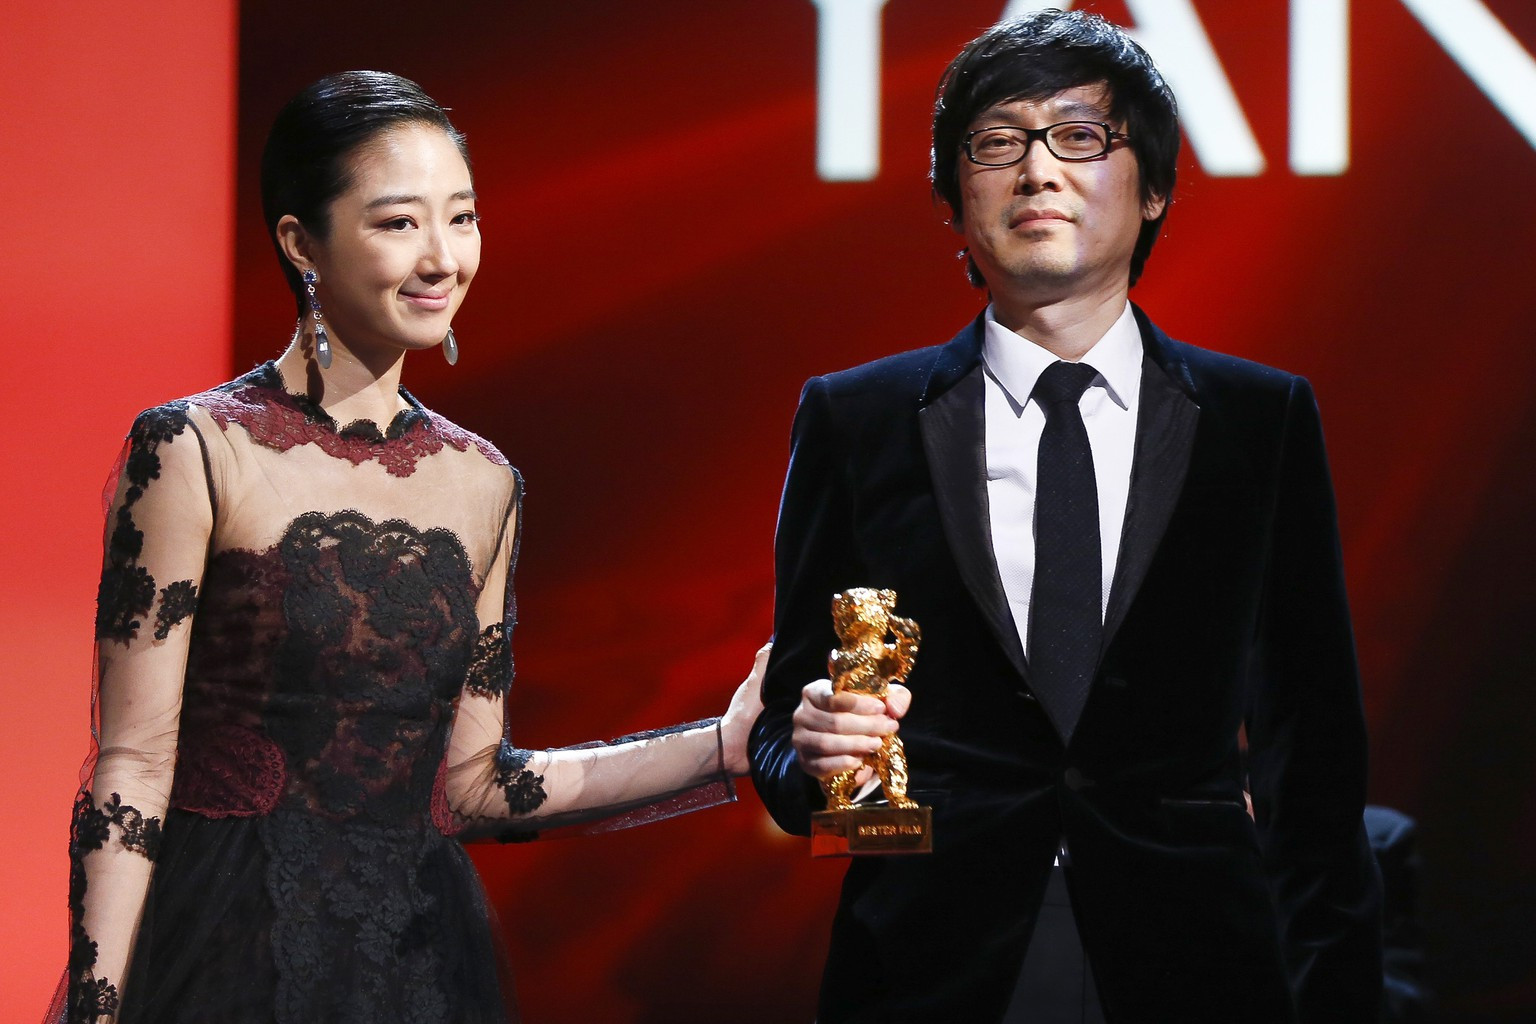 Director Diao Yina, right, holds the Golden Bear for Best Film for the movie Black Coal, Thin Ice, as he stands with actress Gwei Lun Meiduring during the award ceremony at the International Film Festival Berlinale in Berlin, Saturday, Feb. 15, 2014.  (AP Photo/Axel Schmidt)